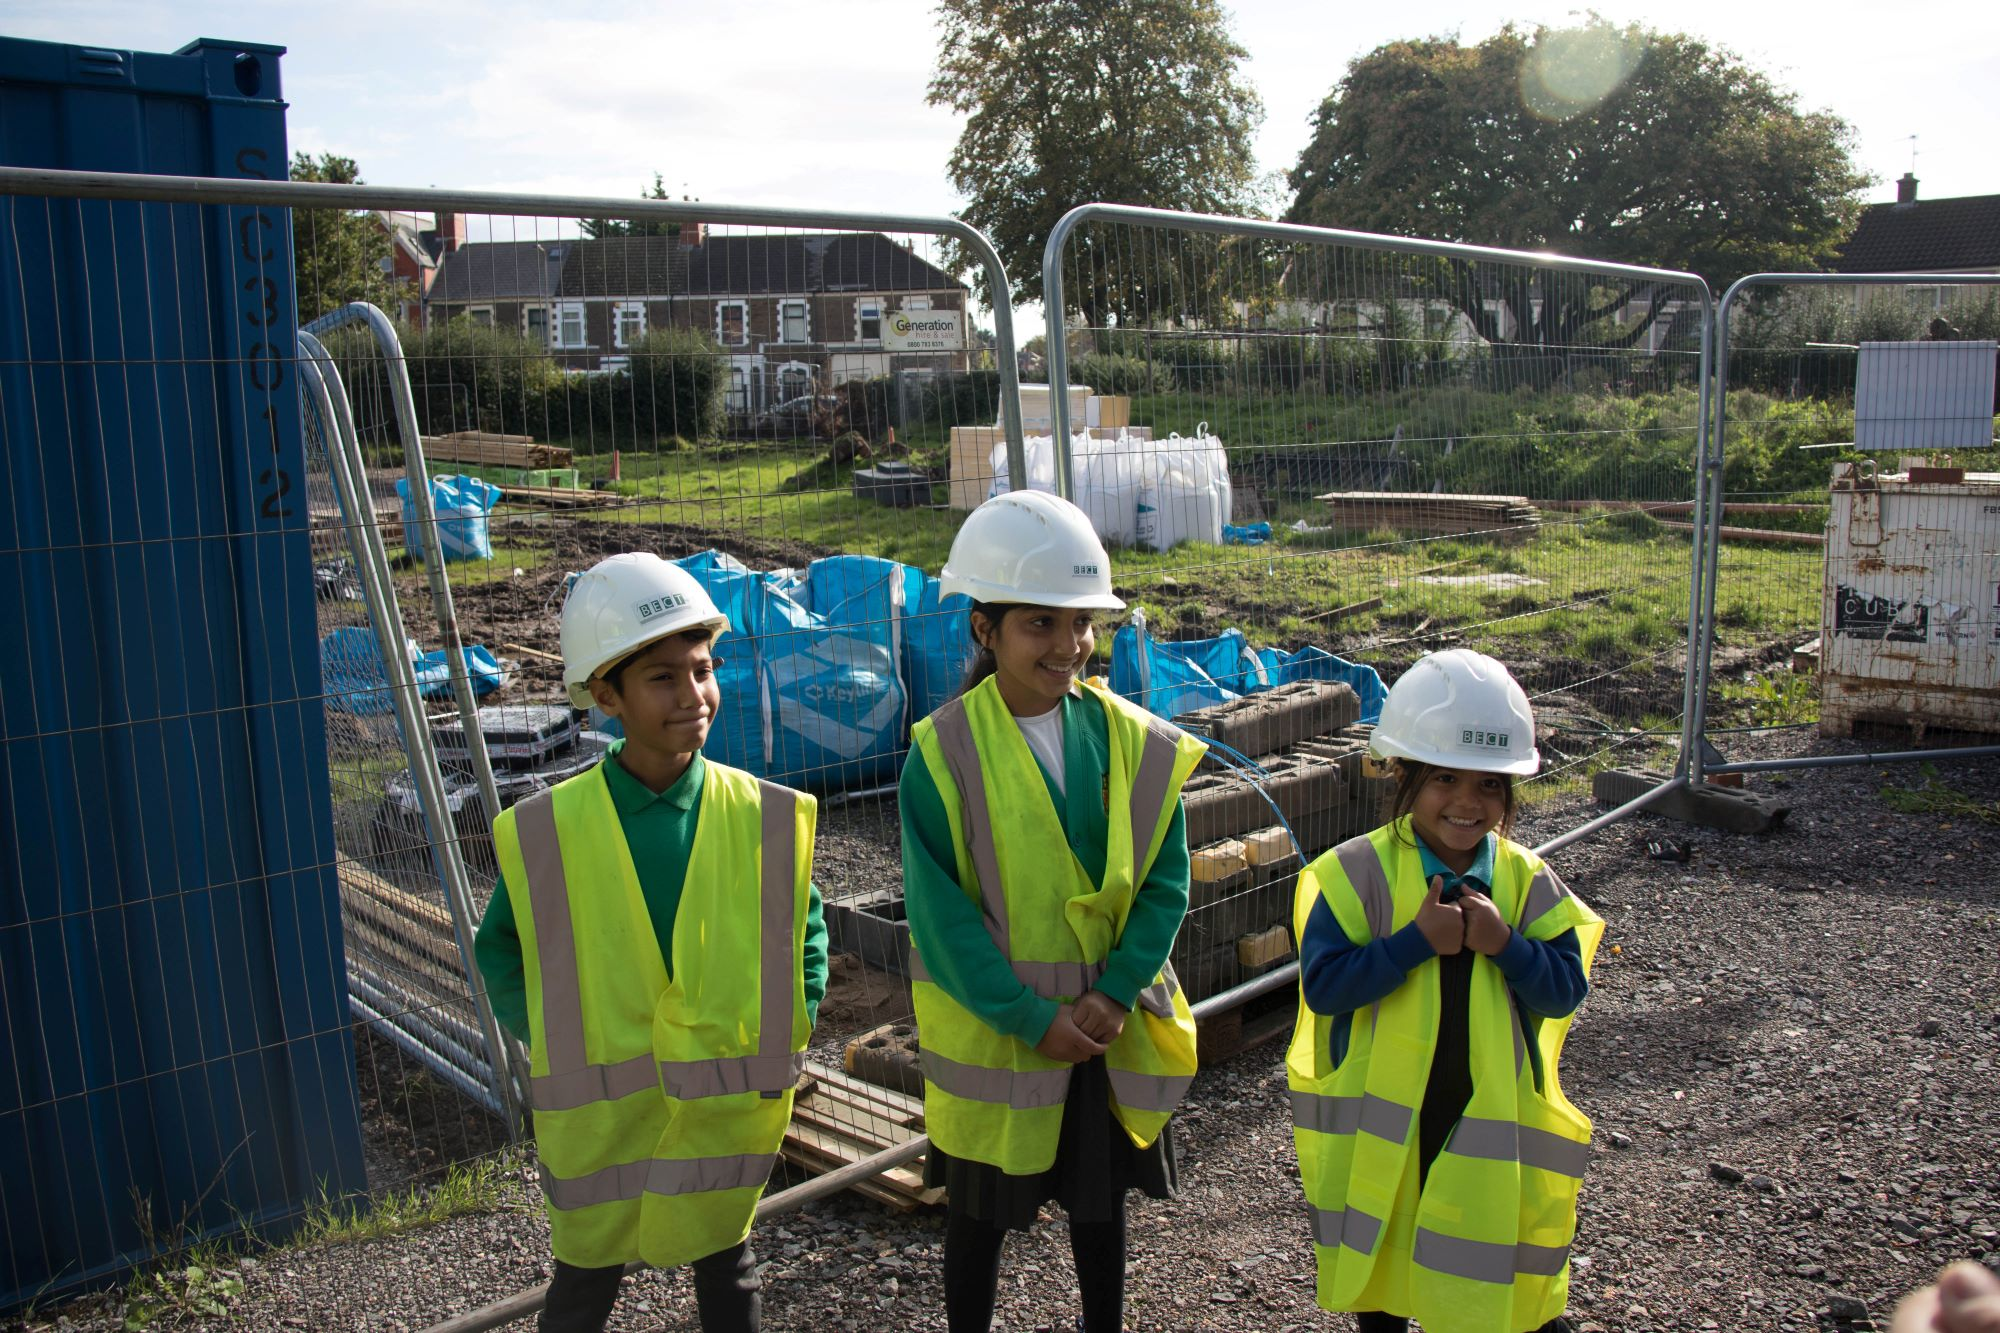 Children in hi vis vests and building helmets standing next to the site of the new Grange Pavilion, recipients of a Landfill Disposals Tax grant